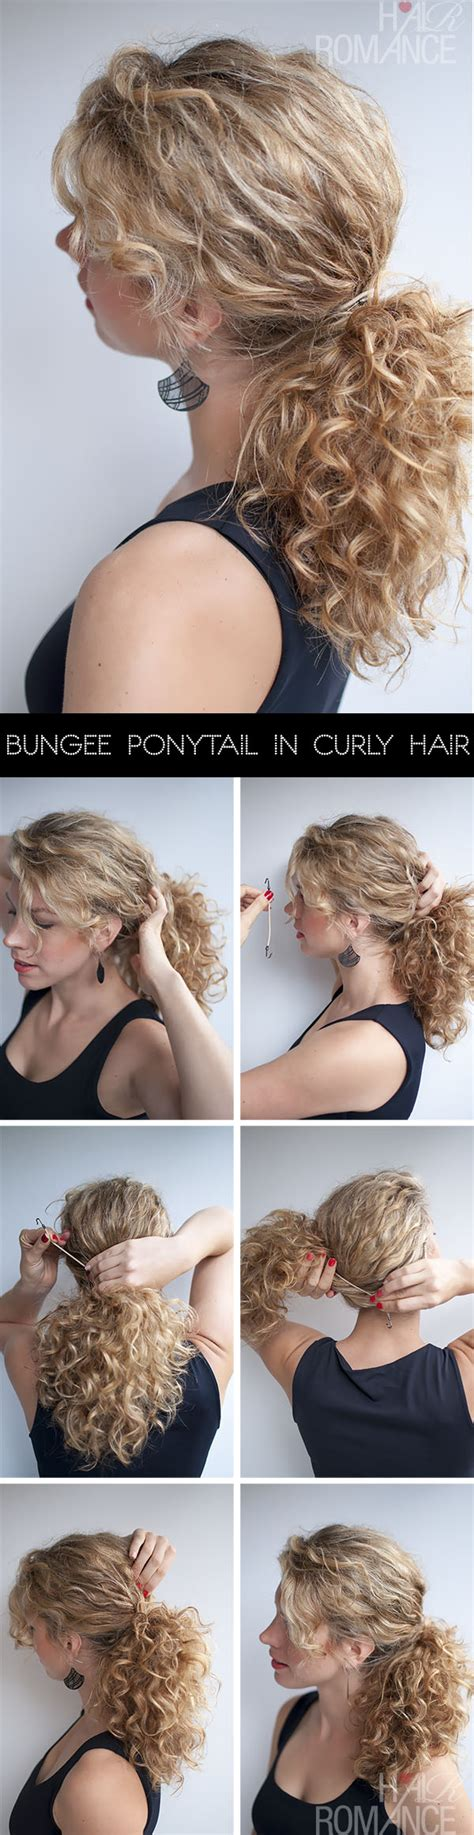 curly hairstyle tutorial the curly ponytail hair romance